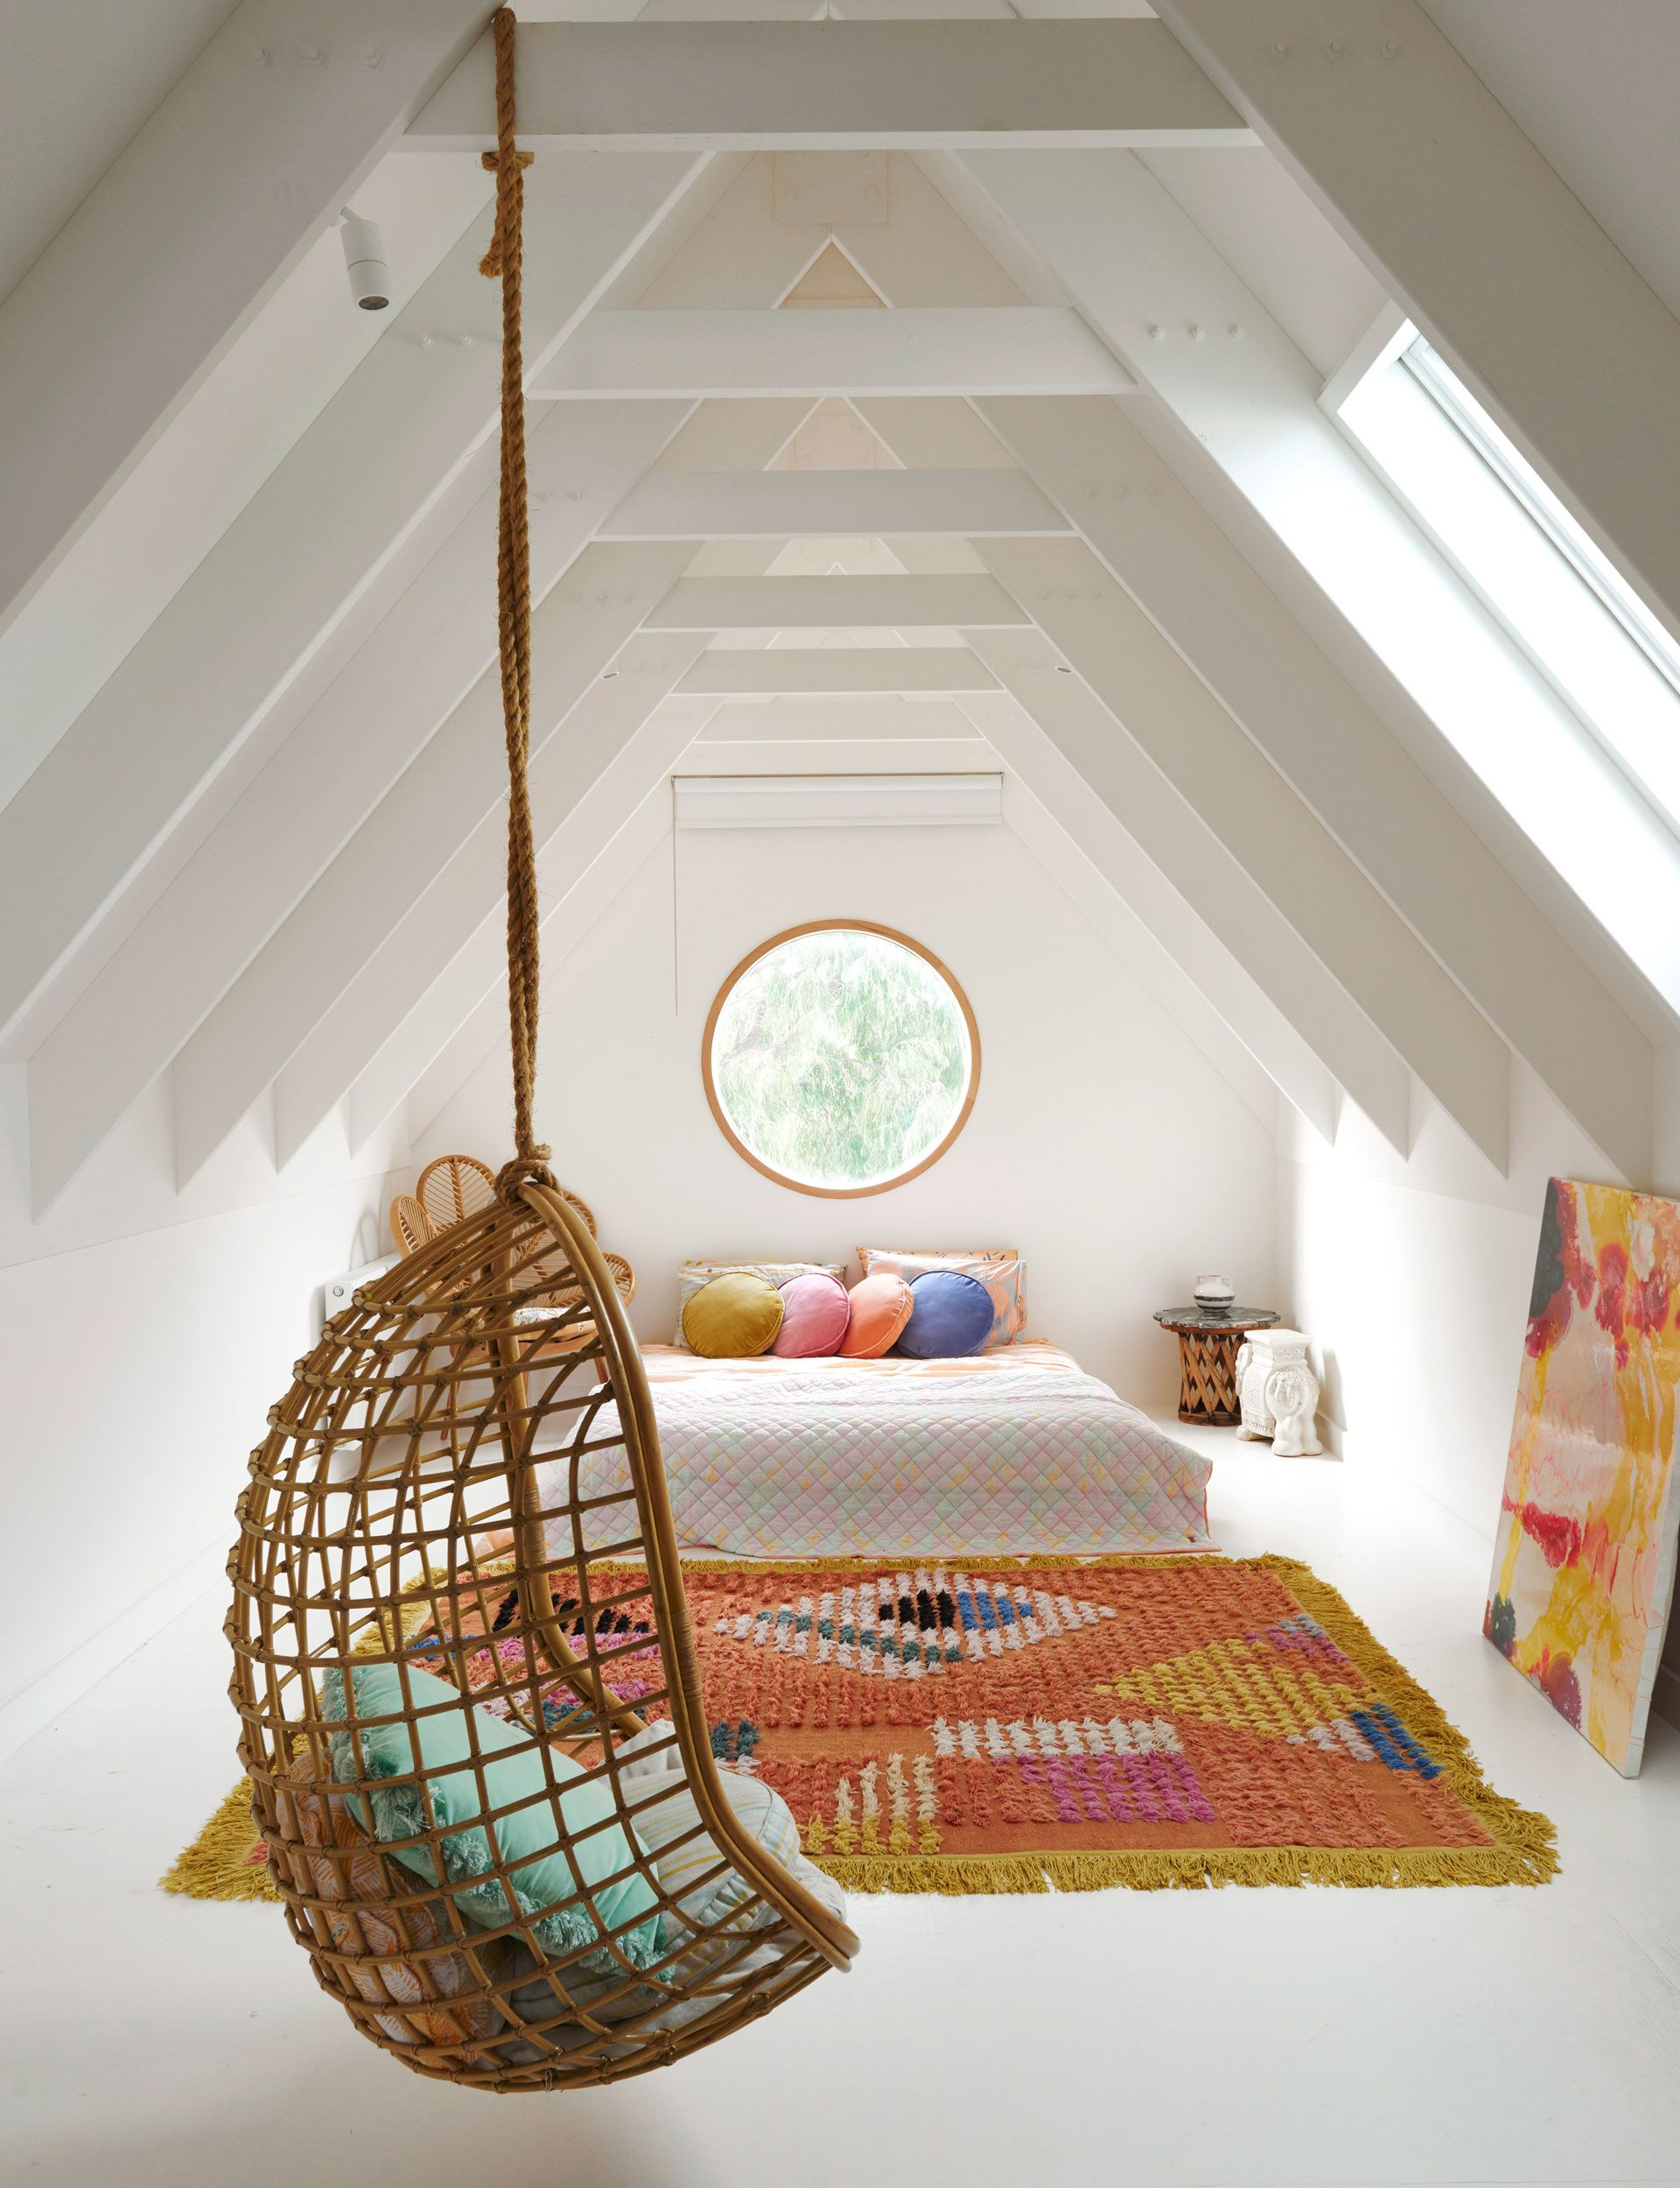 Loft bedroom layout ideas   important design principles that every interiorlover should know